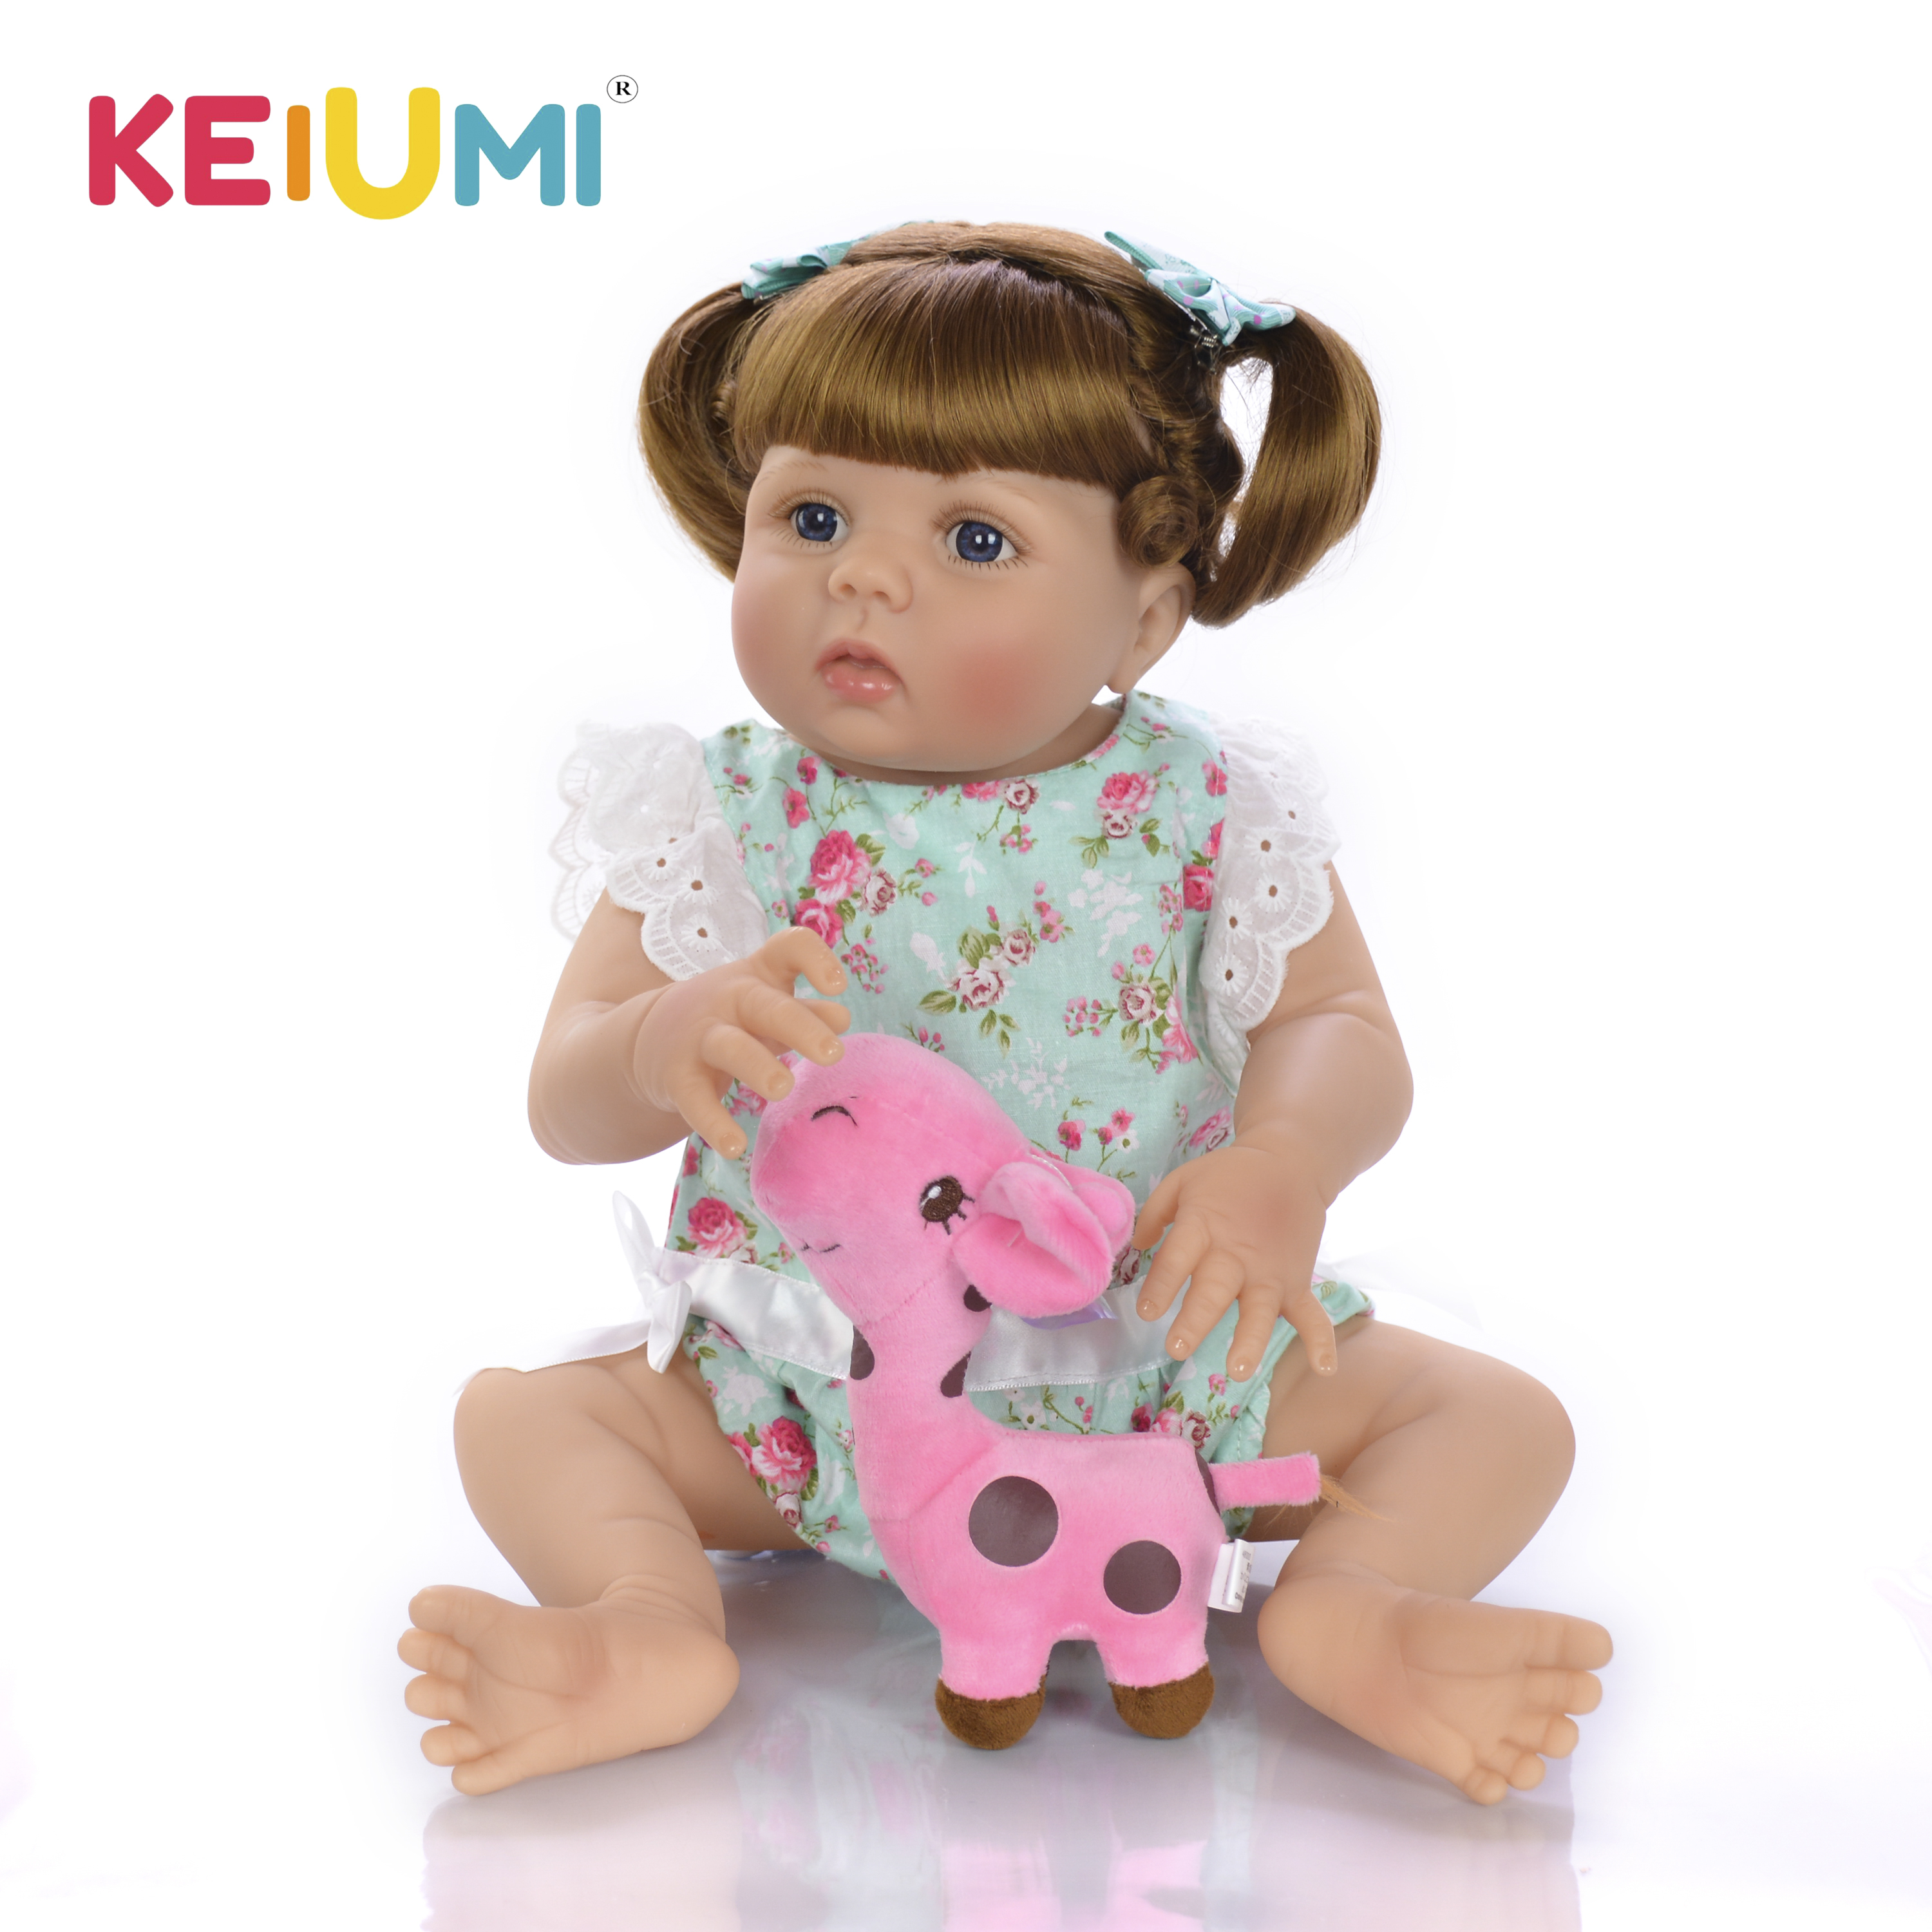 New Style KEIUMI 23 57cm Real Reborn Baby Dolls Adorable Lifelike Toddler doll With Full Silicone Surprise For Christmas GiftsNew Style KEIUMI 23 57cm Real Reborn Baby Dolls Adorable Lifelike Toddler doll With Full Silicone Surprise For Christmas Gifts